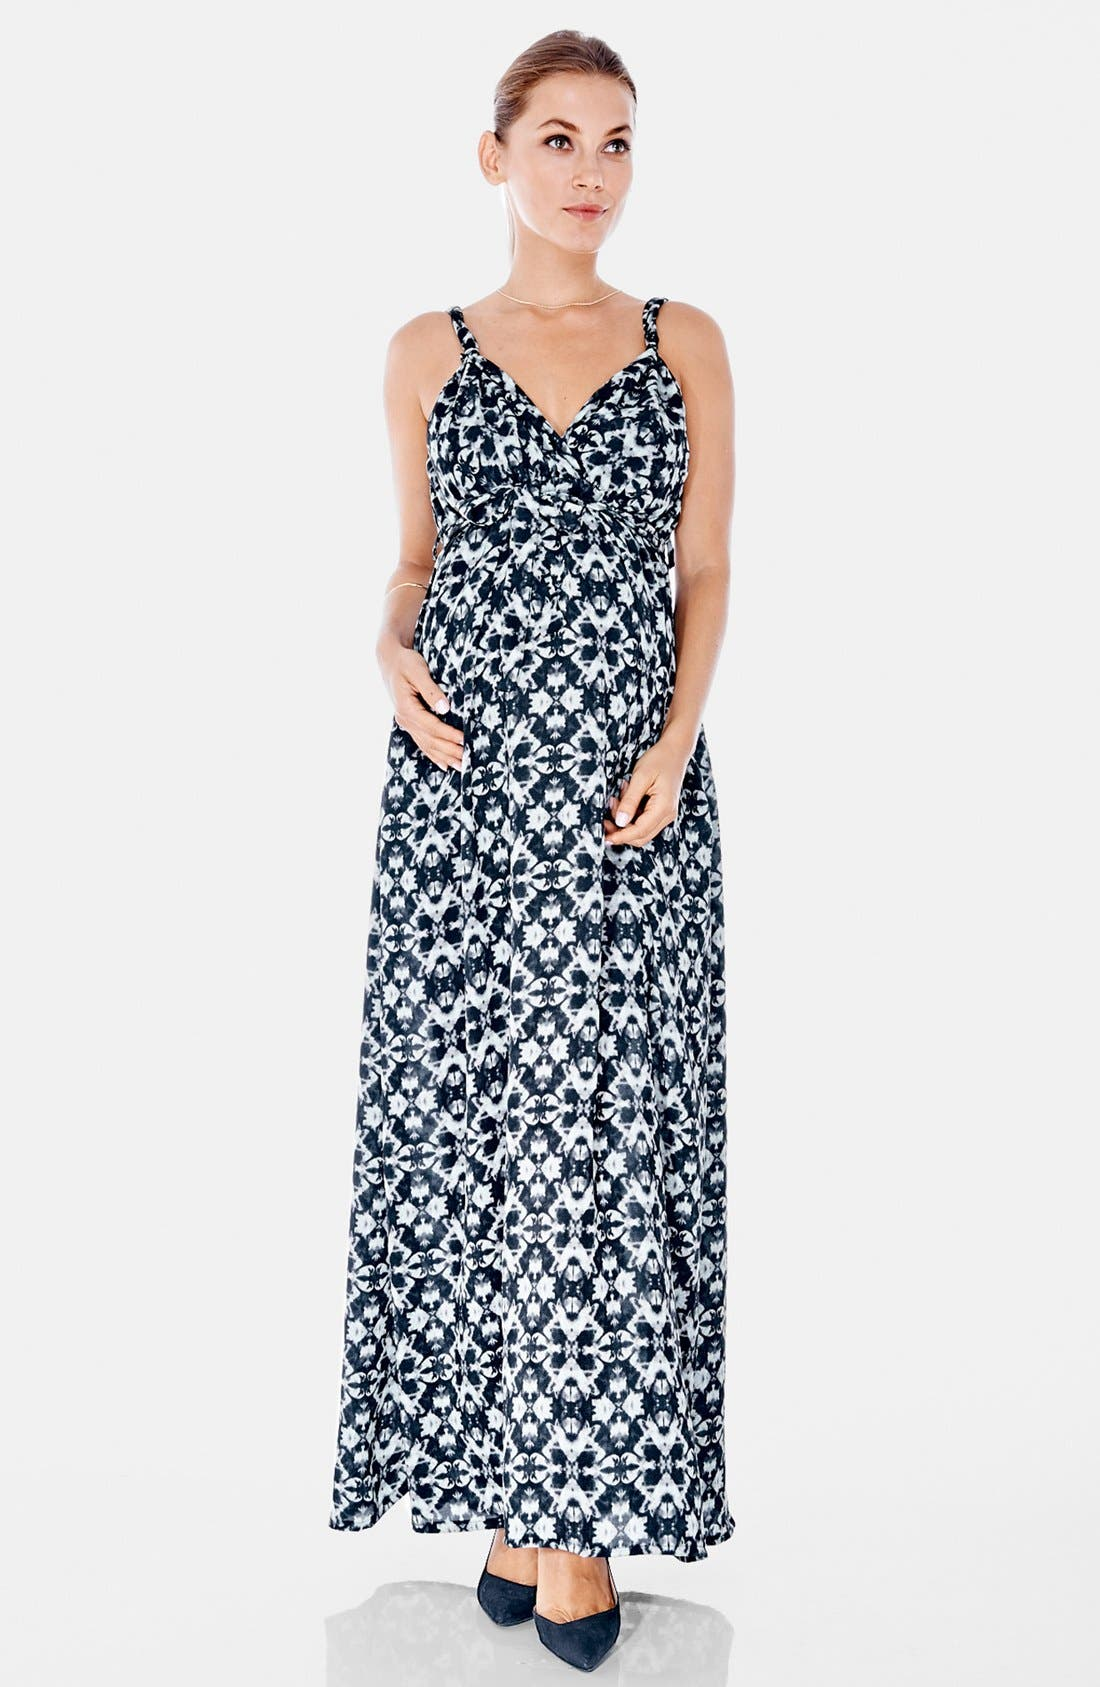 Main Image - Imanimo Maxi Maternity Dress